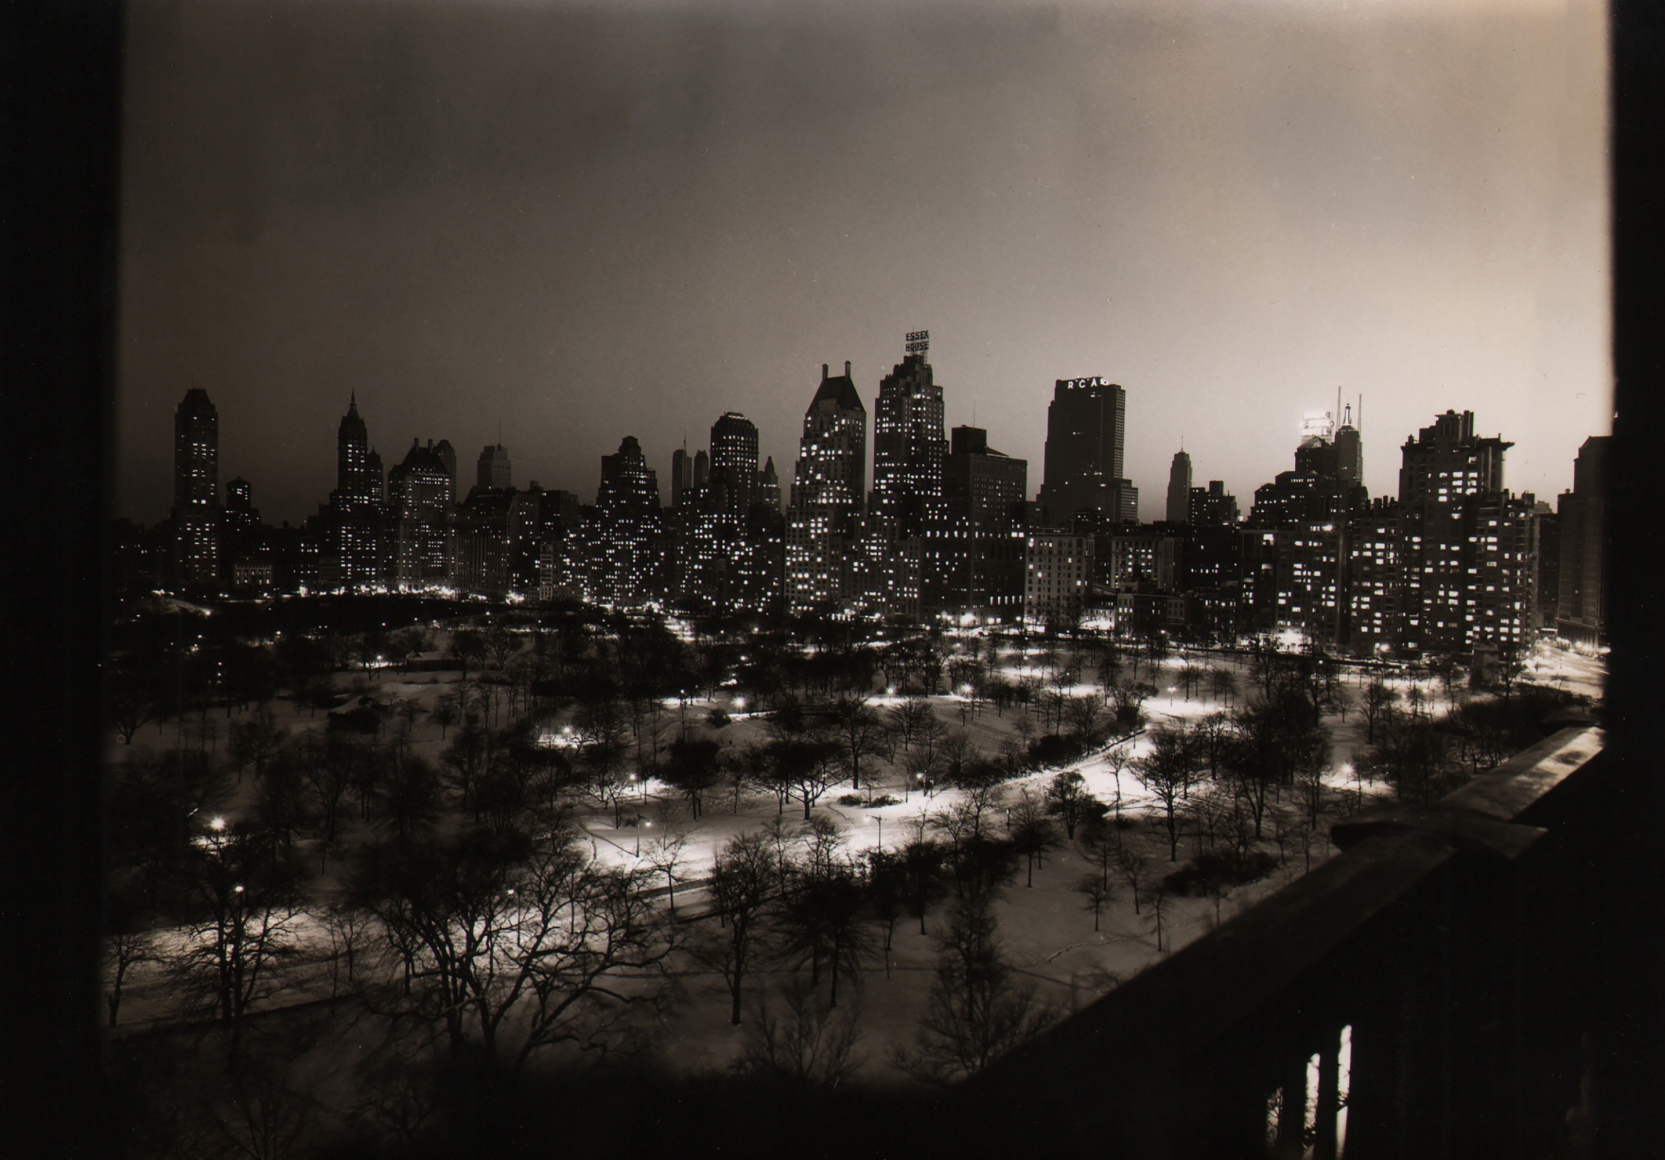 Paul J. Woolf, Central Park & 59th Street, c. 1936. Night time cityscape with Central Park in the foreground and tall buildings in the background.